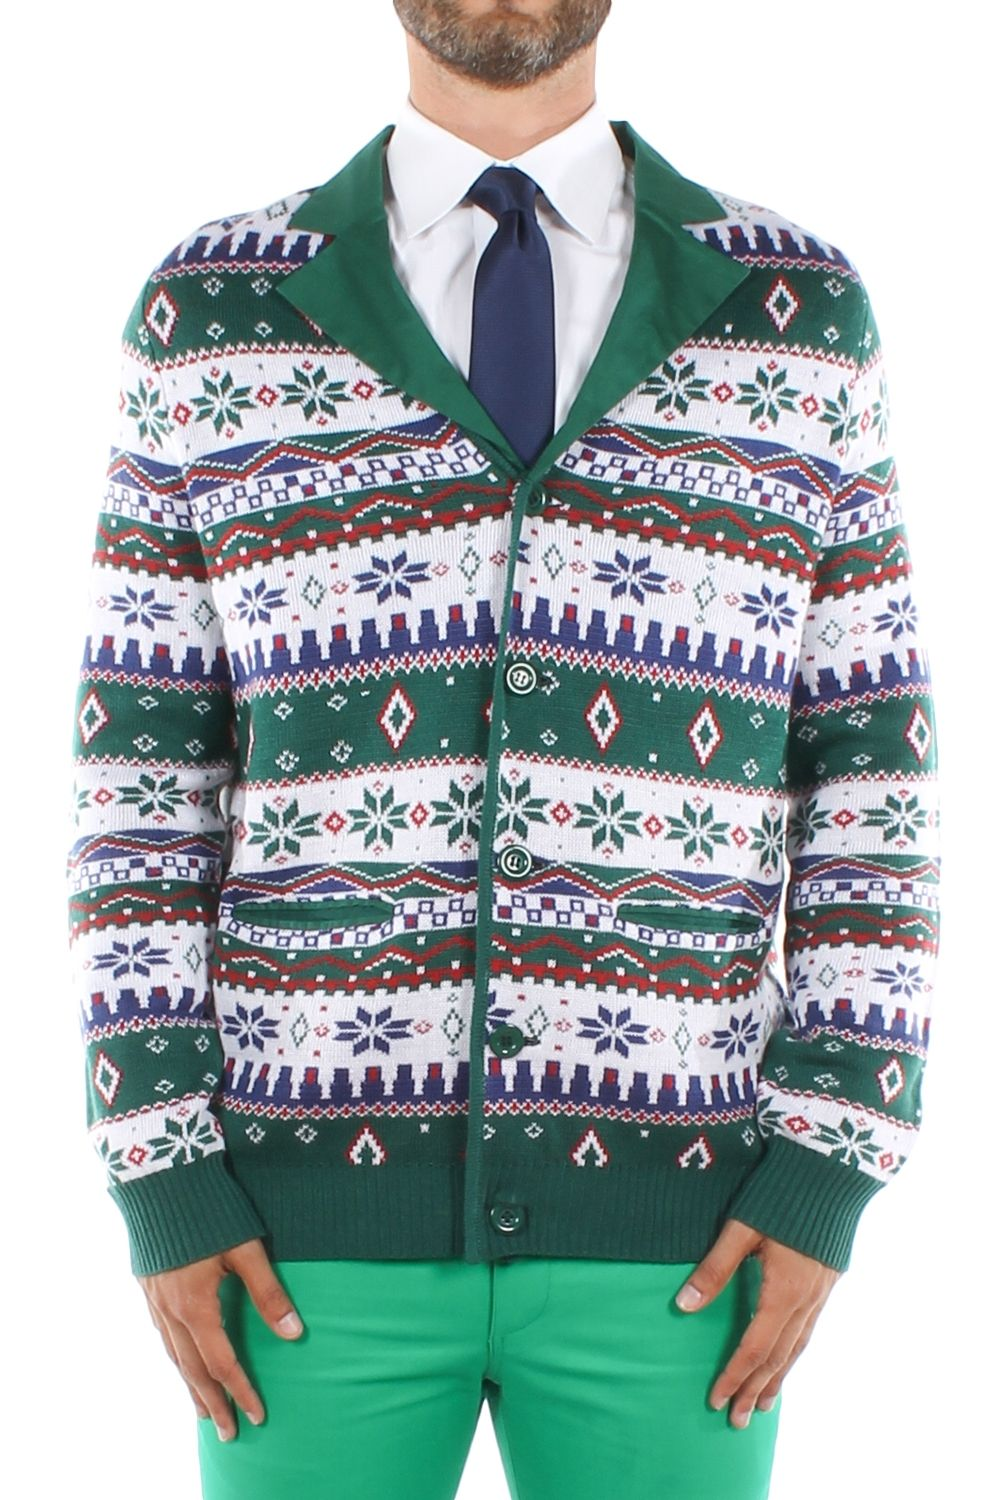 Men's Green Red and White Sweater Suit Jacket | Christmas parties ...